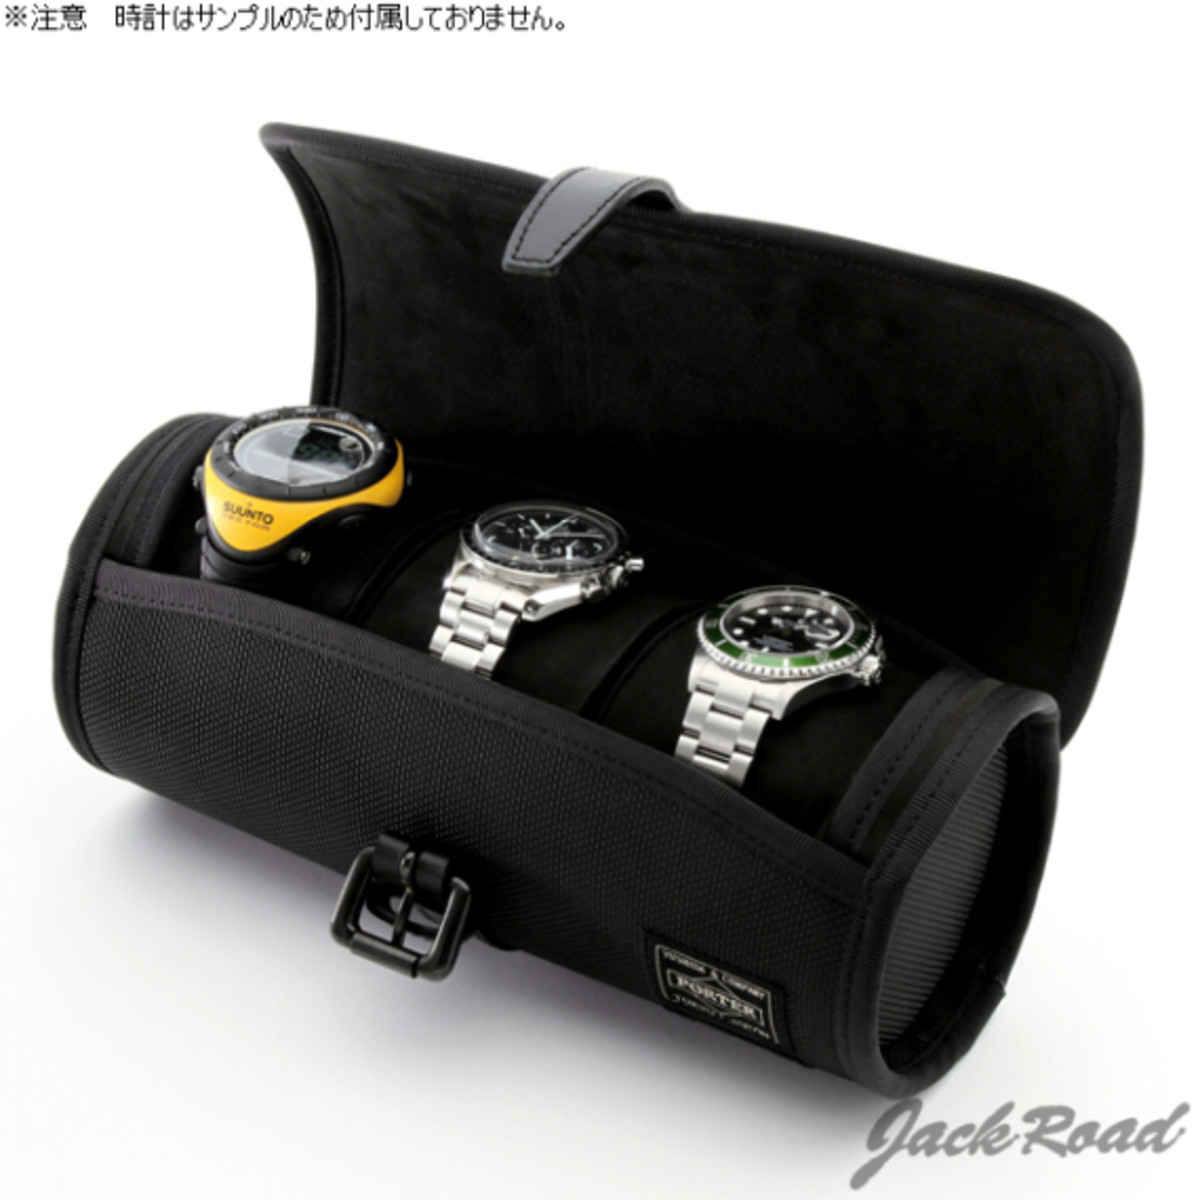 jack-road-porter-watch-carrying-case-14